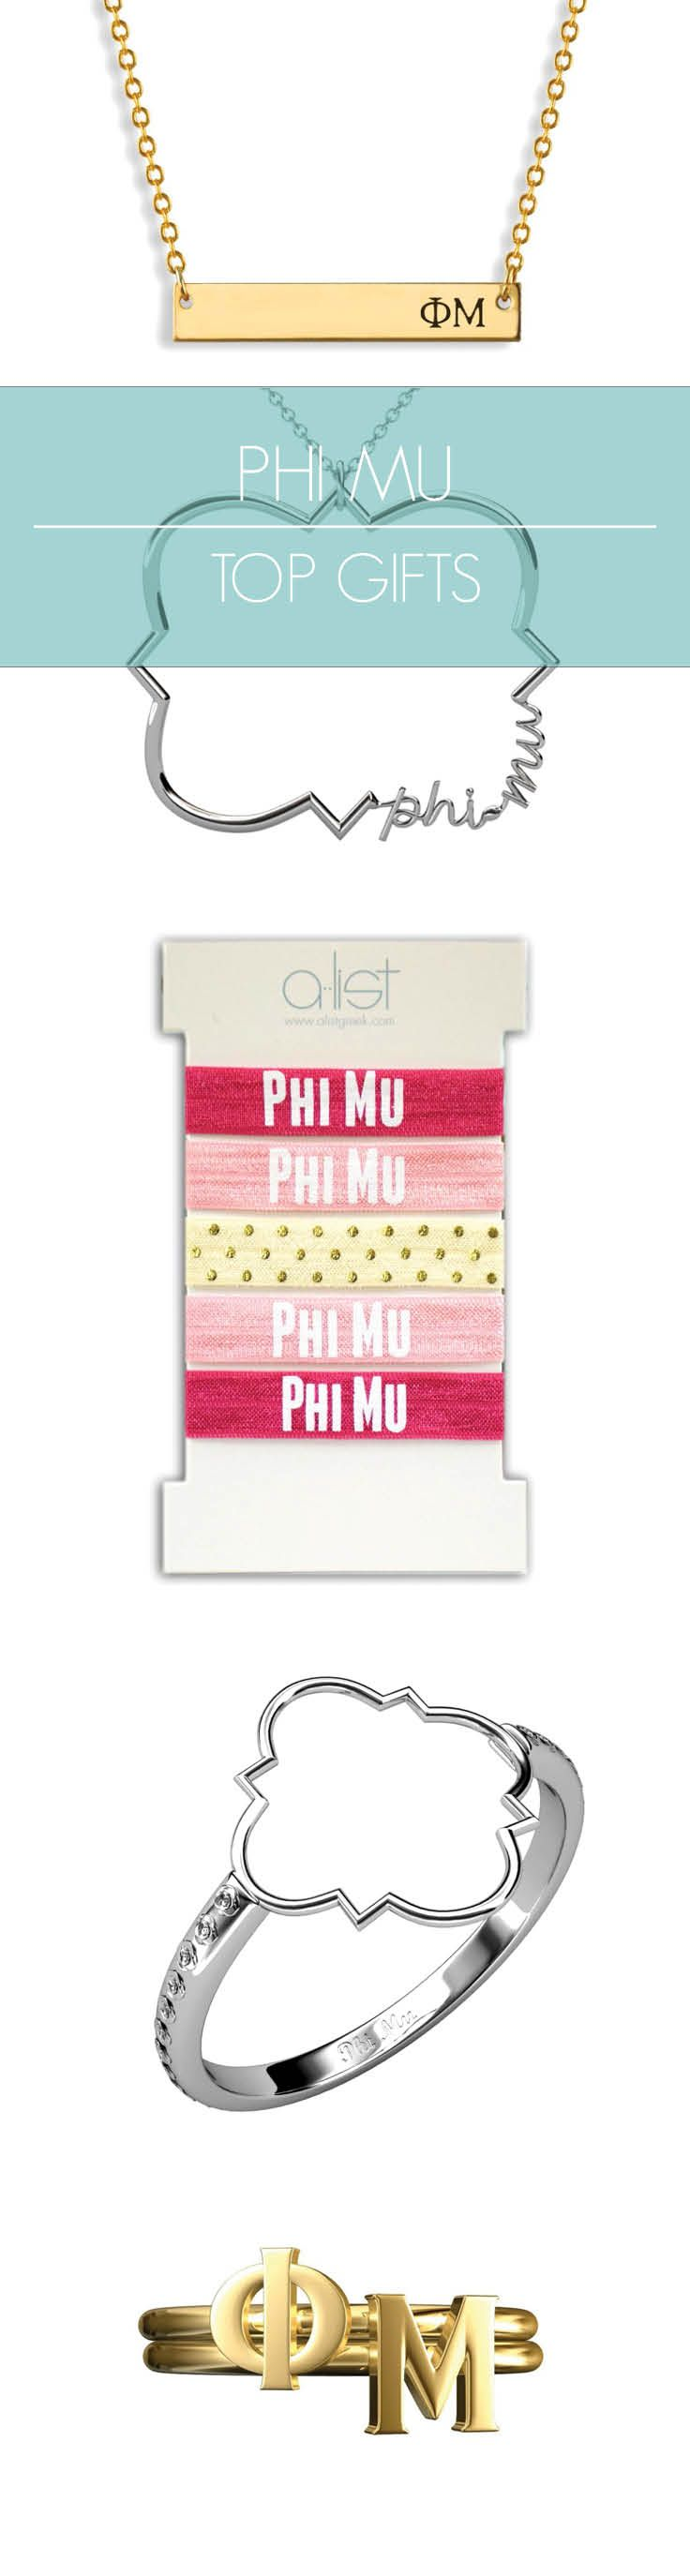 Top Phi Mu Gifts for you and your sisters! This season's must-haves for all things Phi Mu // #sorority www.alistgreek.com